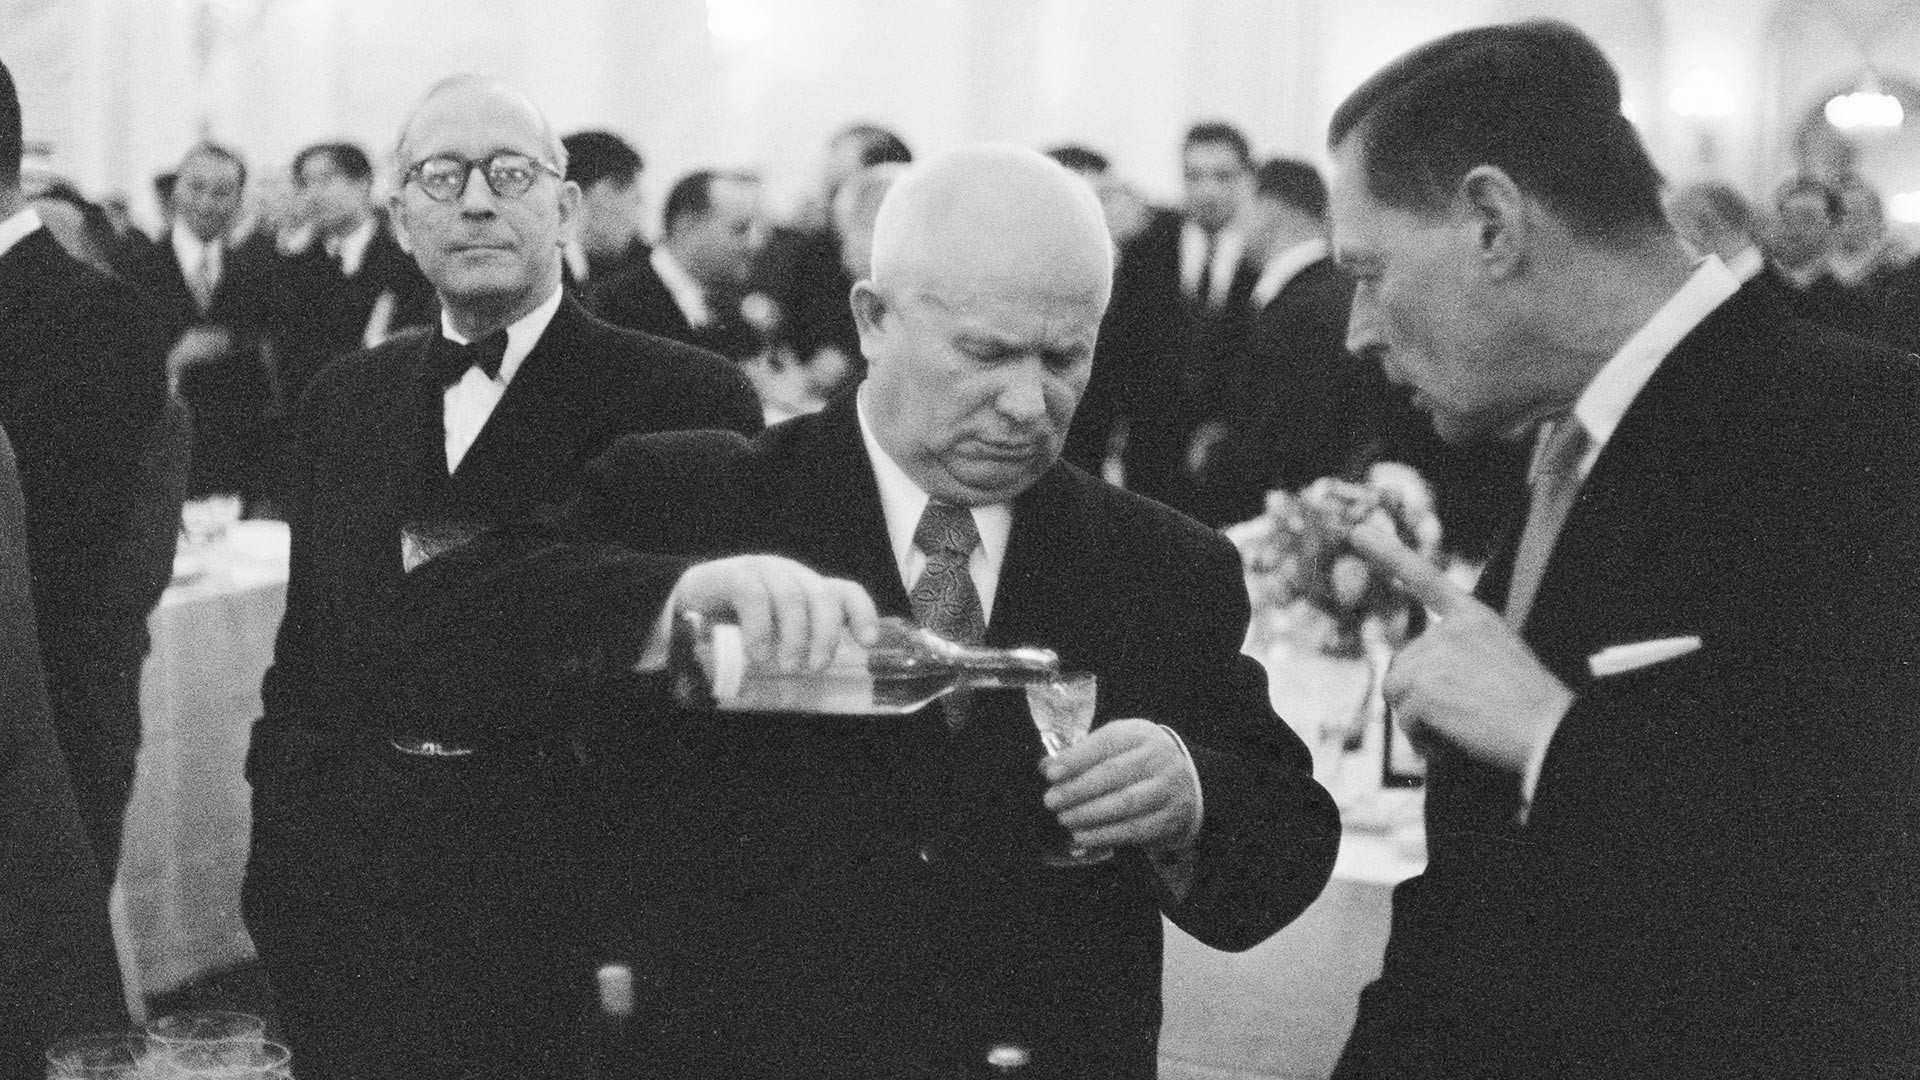 Nikita Khrushchev drinking with Charles E Bohlen, the US Ambassador to the Soviet Union, at an official function, 1955